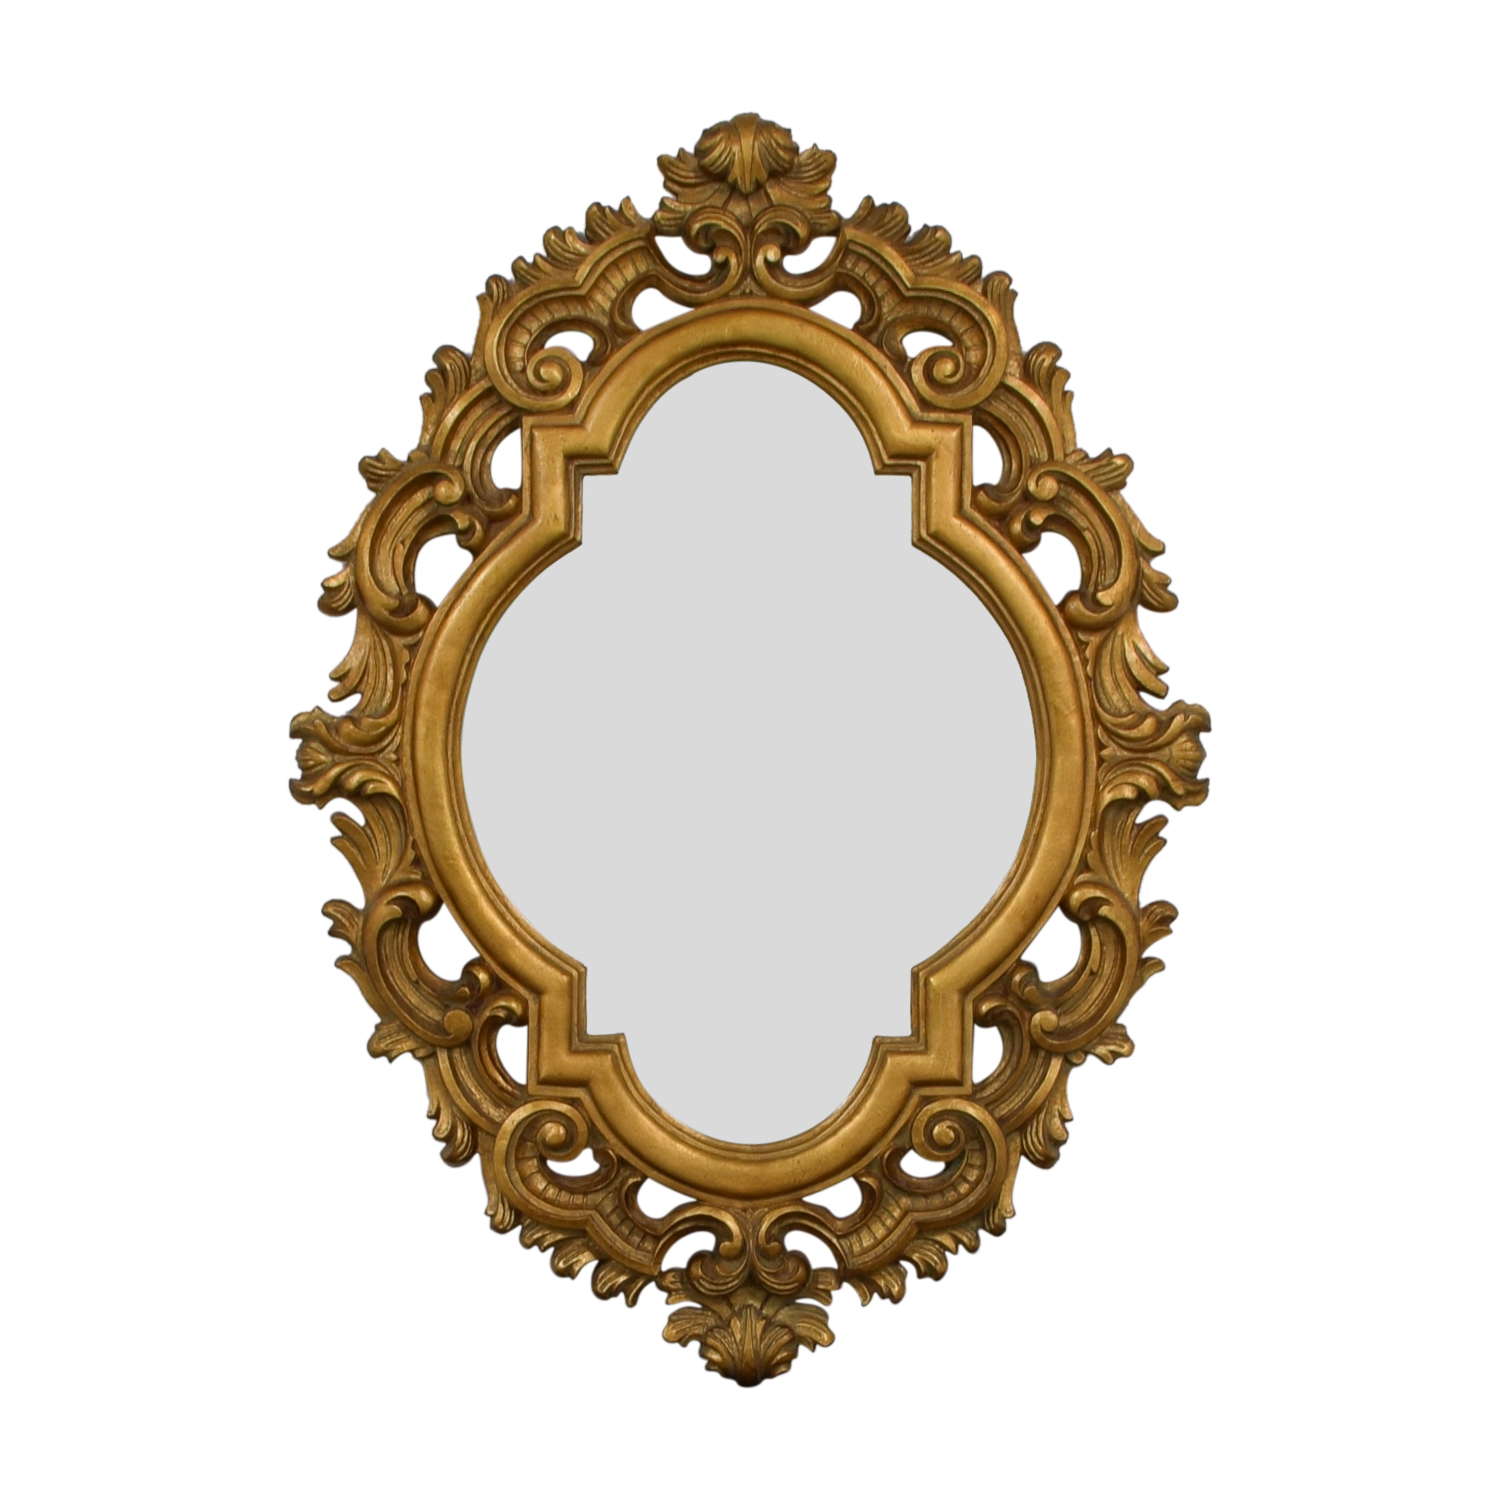 Oval Gold Wall Mirror bronze